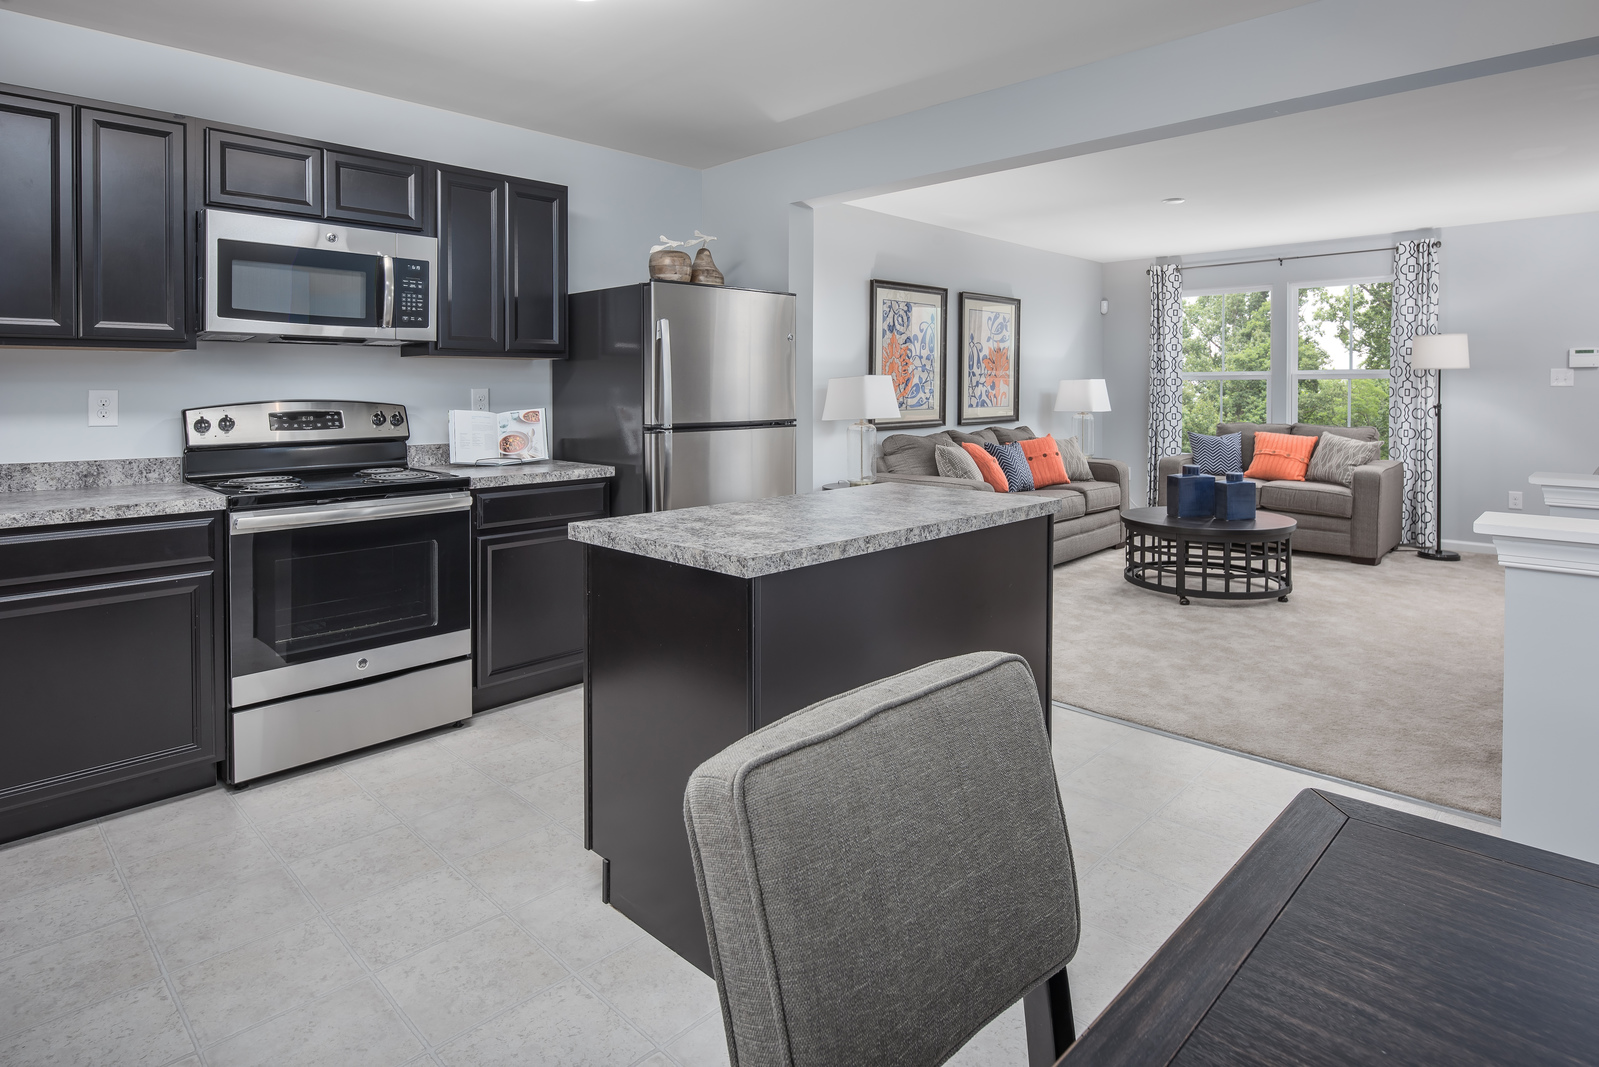 New homes for sale at regents crest in winchester va within the winchesterrsquos most affordable new garage townhomes with wooded views and convenient locationnbsp solutioingenieria Gallery